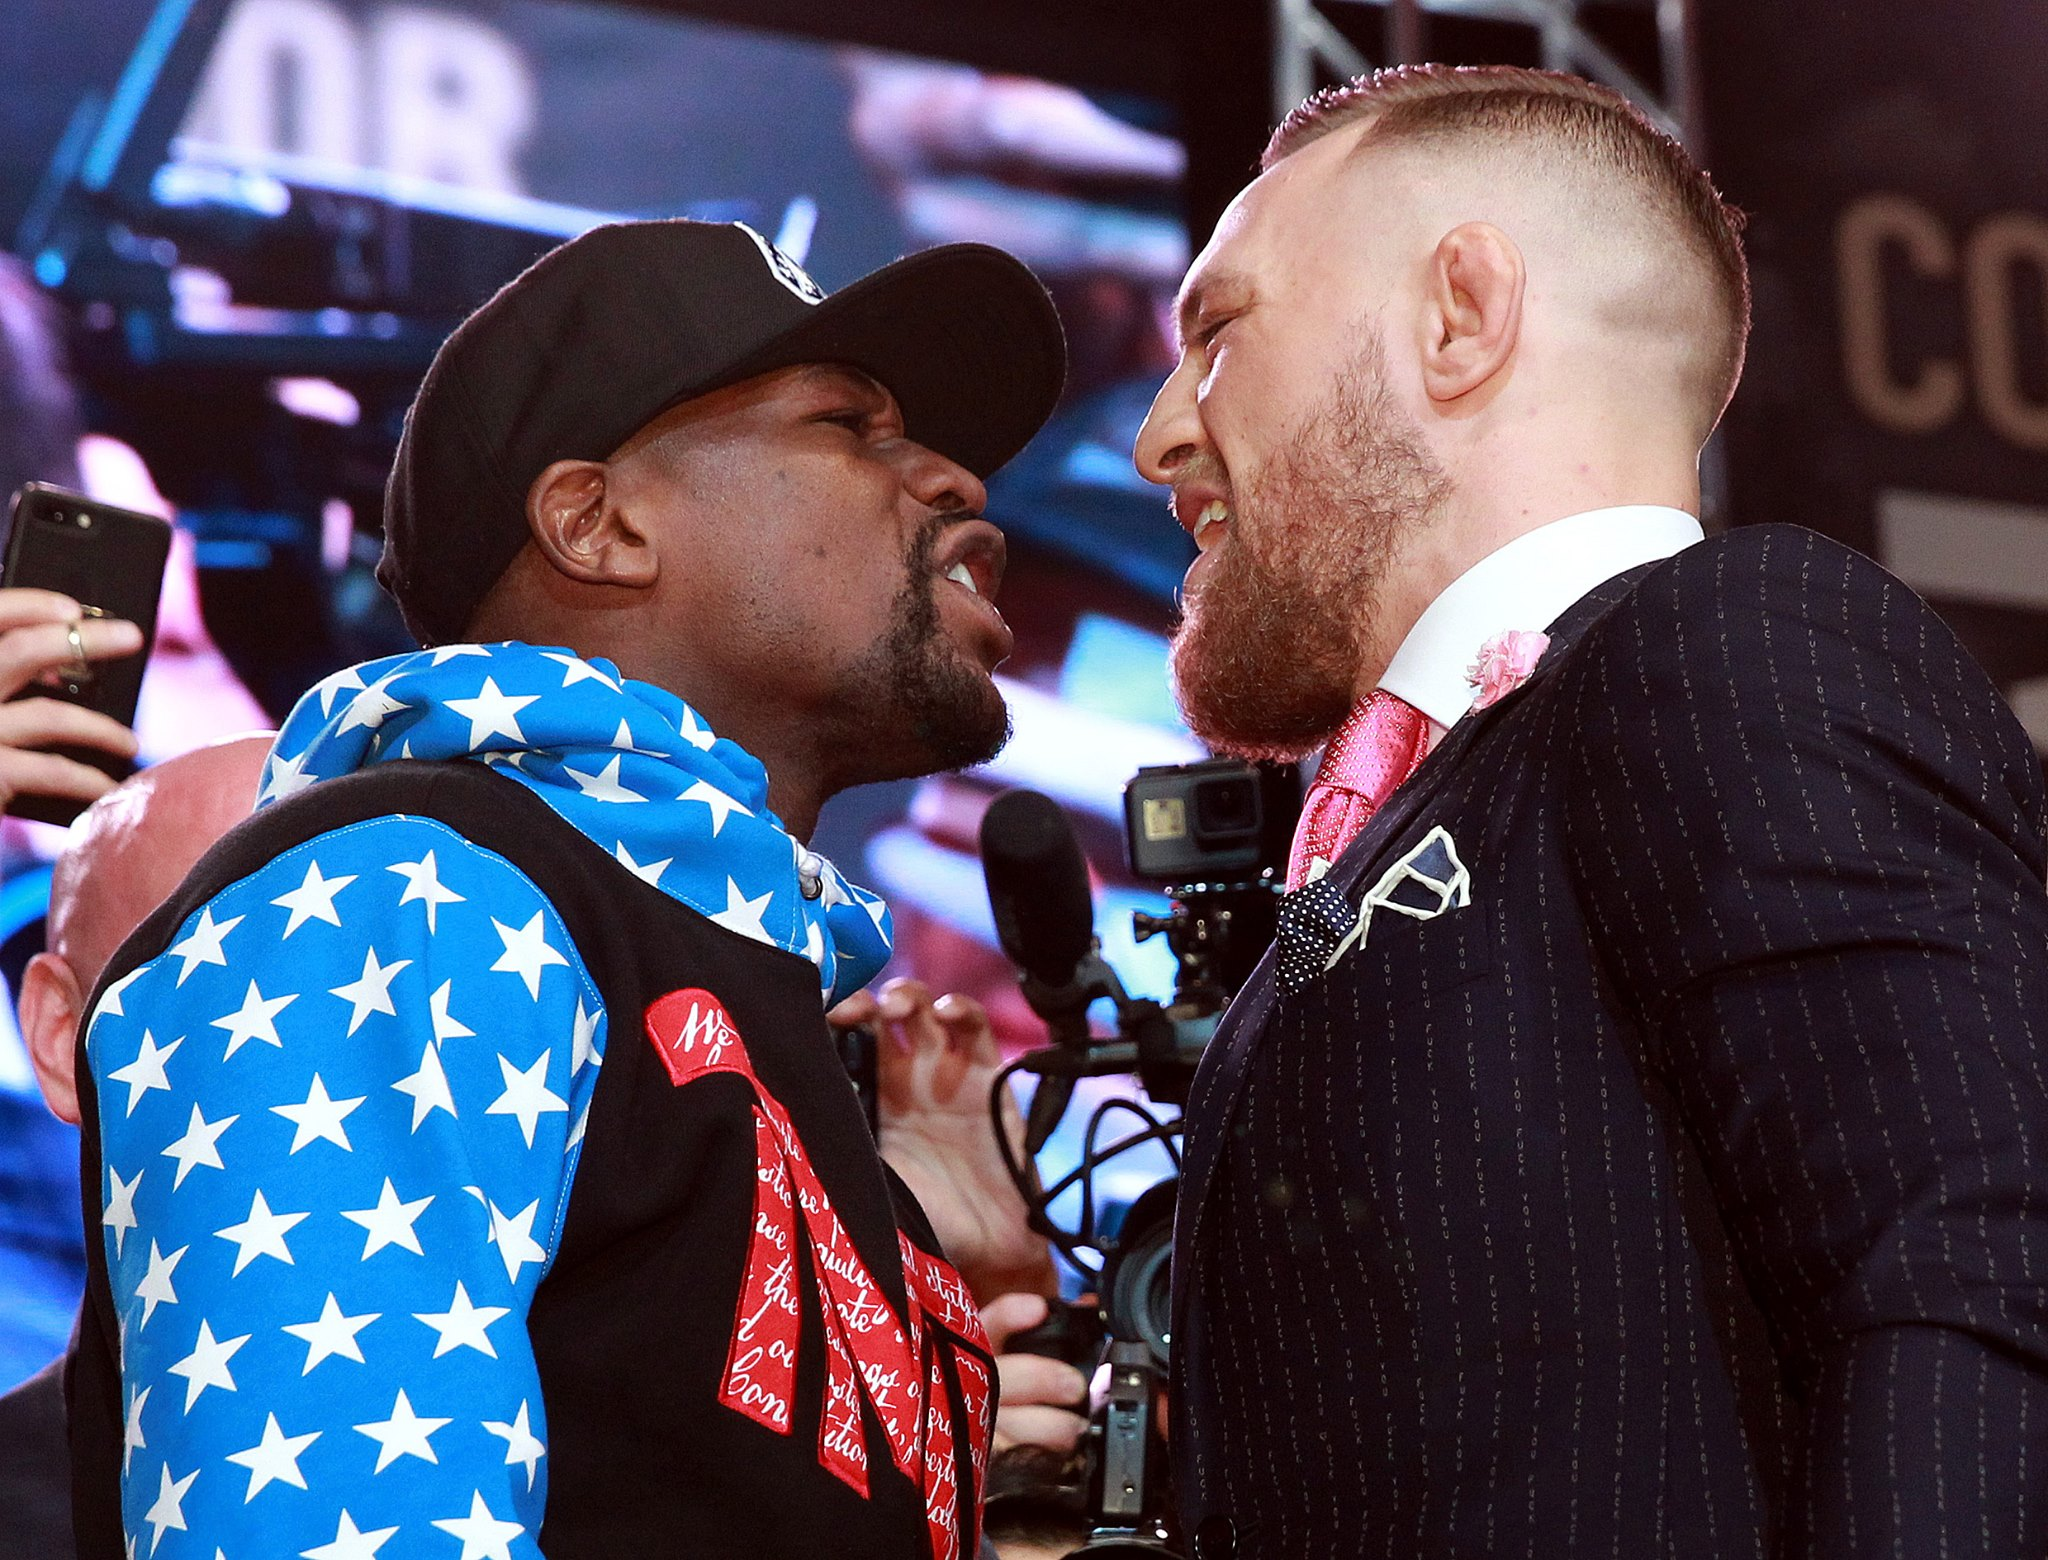 Watch Conor McGregor and Floyd Mayweather's second press conference live stream